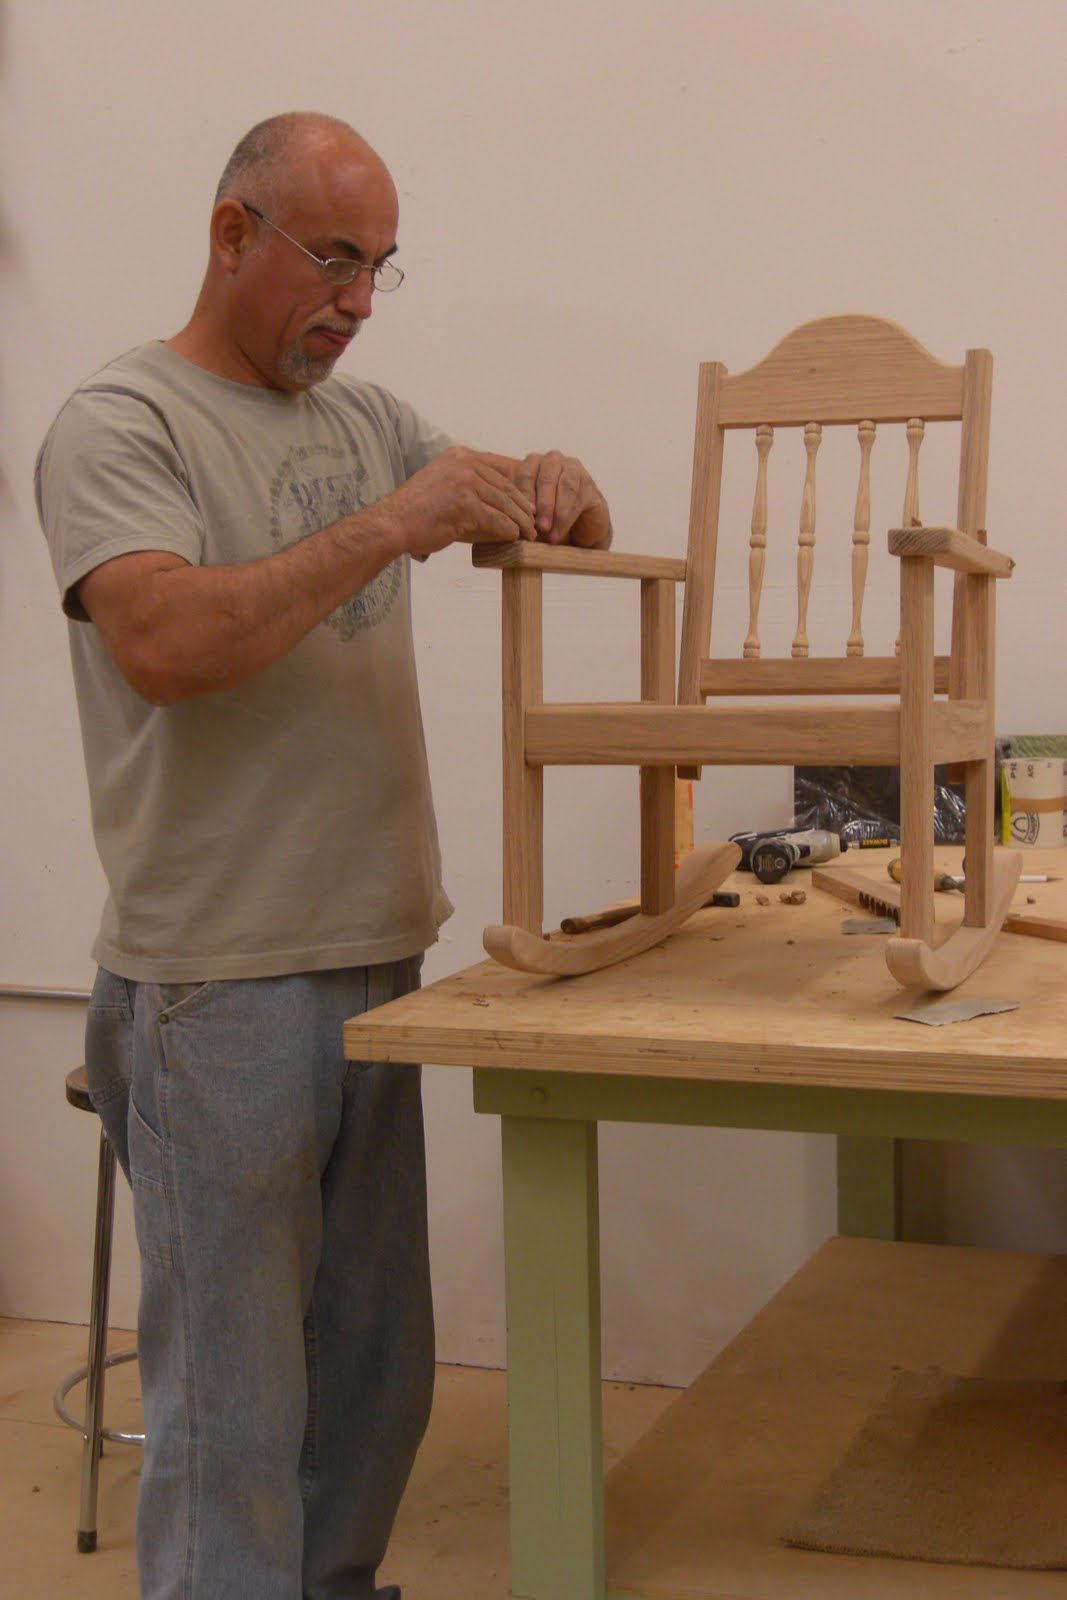 Carpentry Carpenter Woodworker Woodworking Wooden: Woodworking Classes In Las Vegas: Course Descriptions